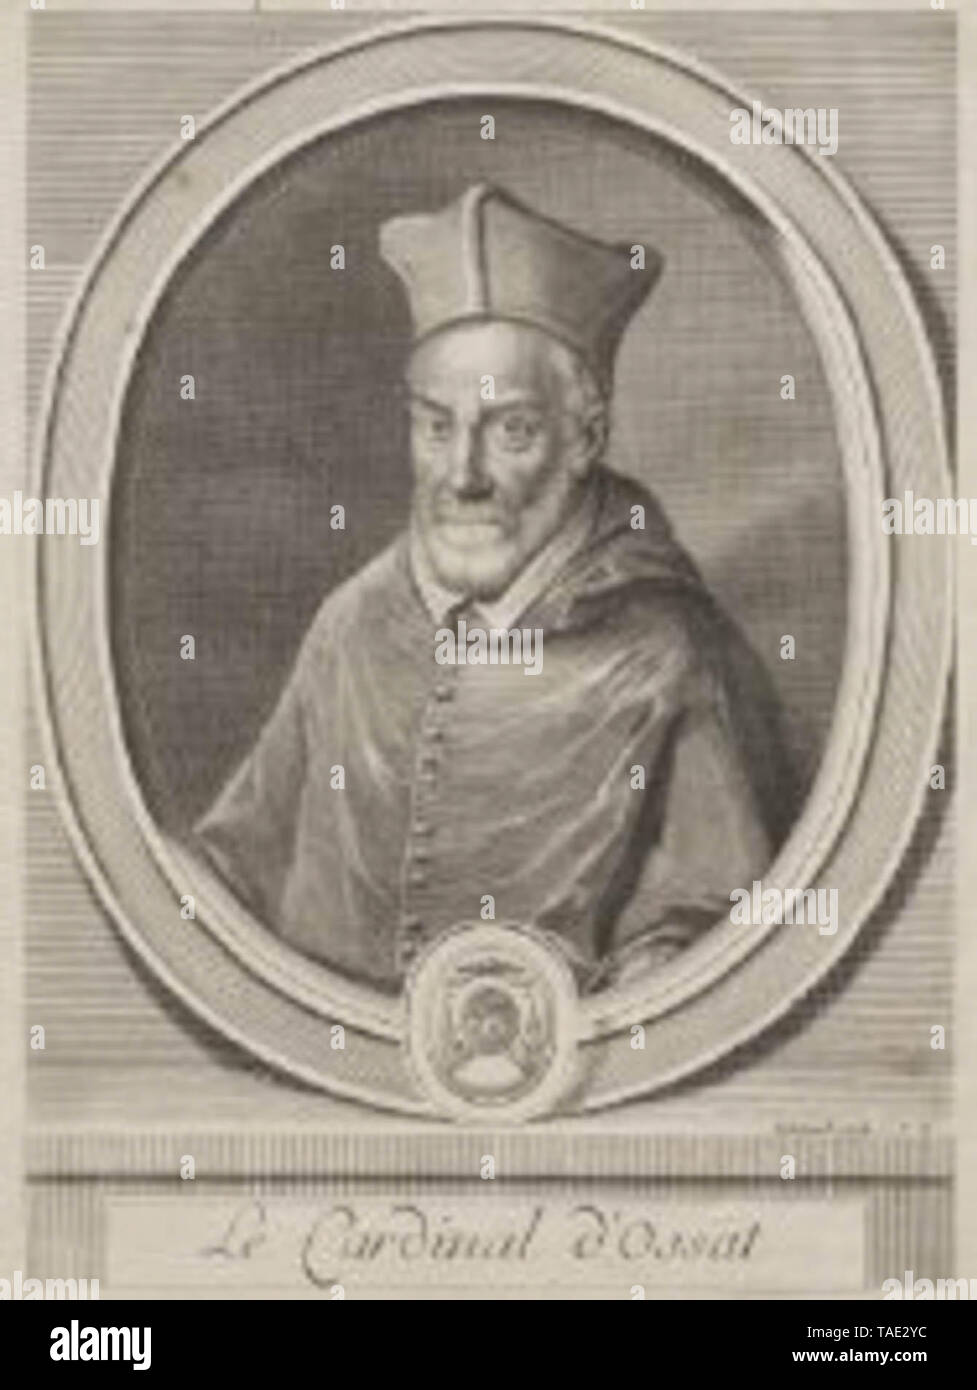 Arnaud d'Ossat (20 July 1537 – 13 March 1604) was a French diplomat and writer, and a Cardinal of the Roman Catholic Church, whose personal tact and diplomatic skill steered the perilous course of French diplomacy with the papacy in the reign of Henry IV of France - Stock Image